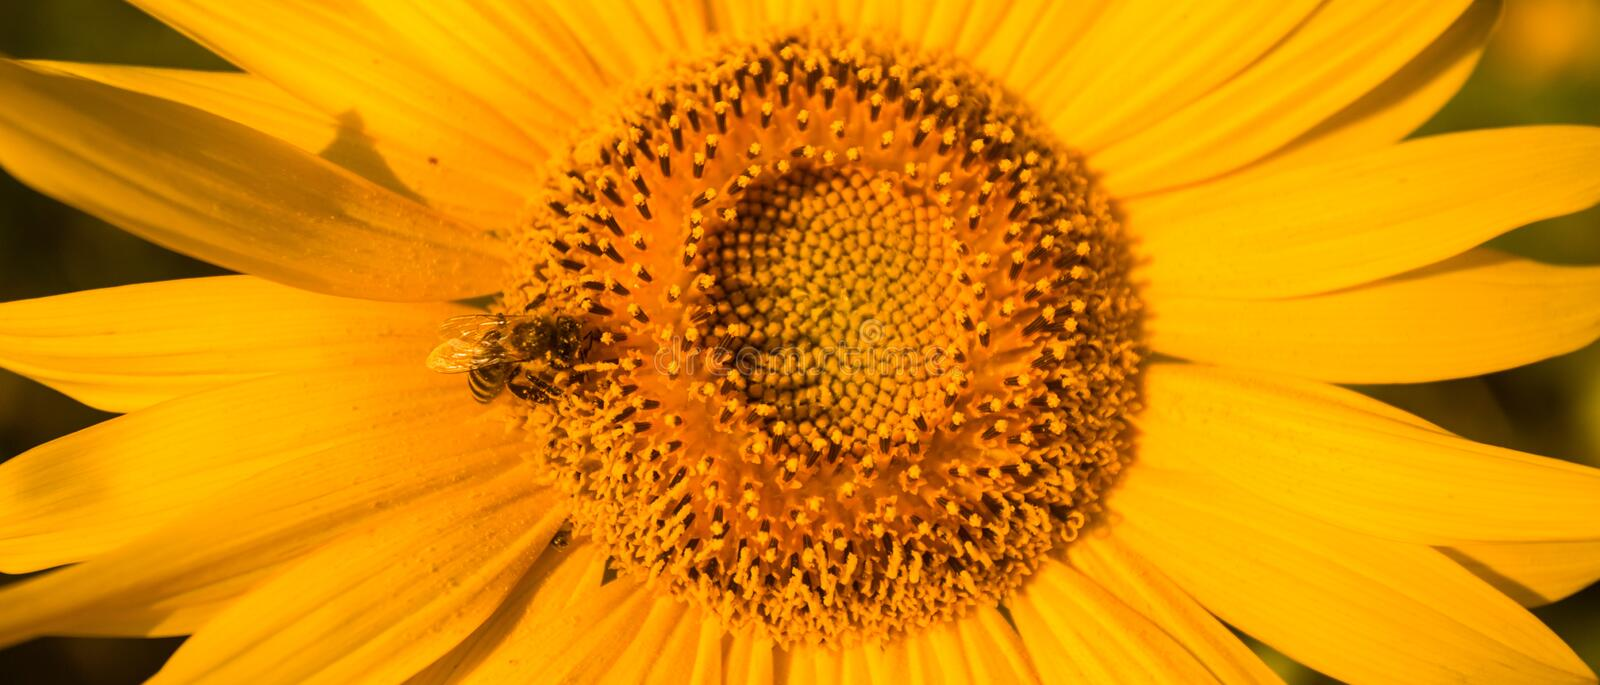 Spiral pattern in center of sunflower close up showing beautiful texture with neatly arrangement. Of nature creation royalty free stock photos